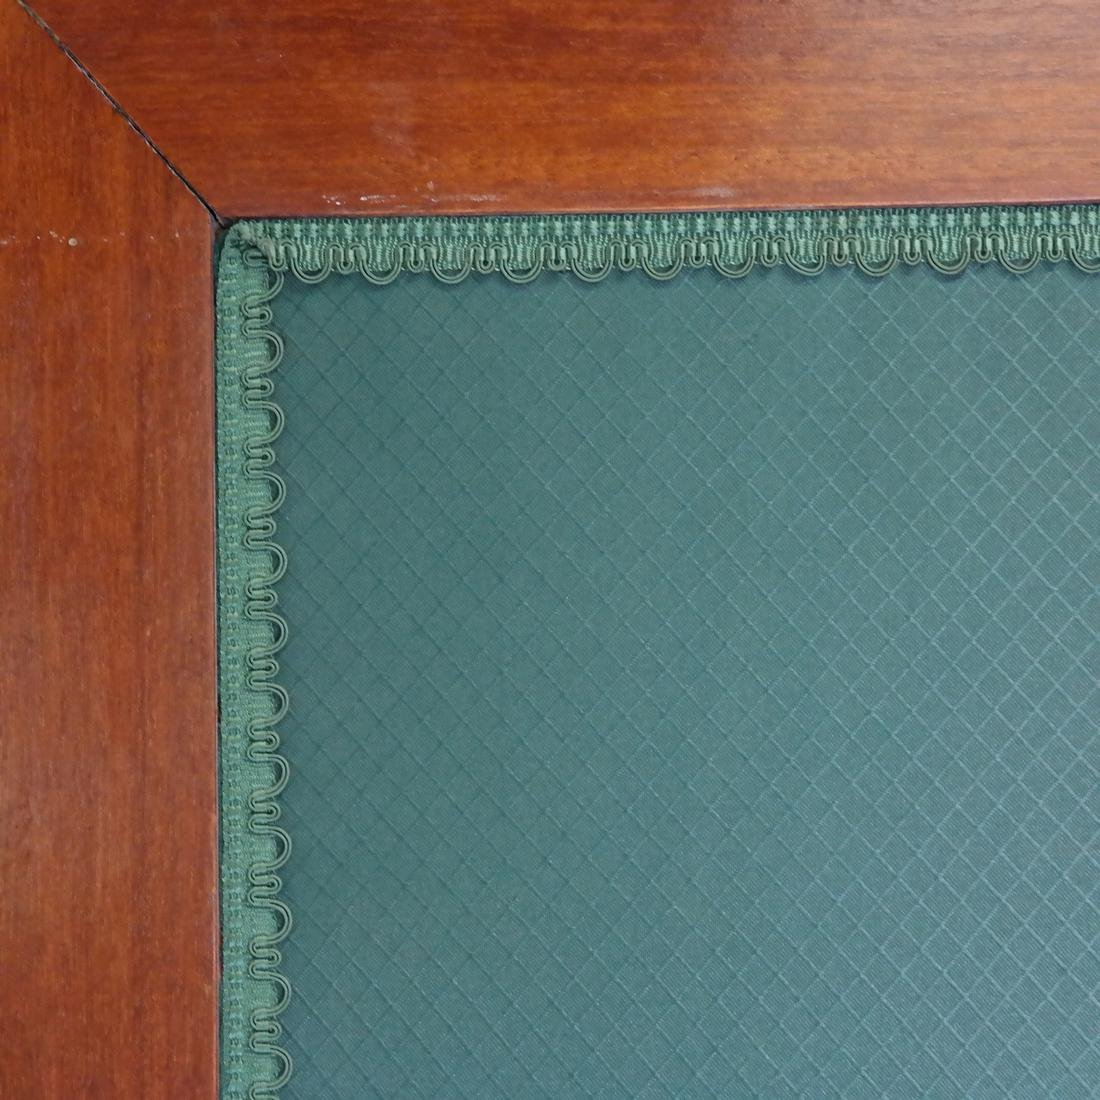 Upholstered 3-Part 19th Century Room Divider - 4